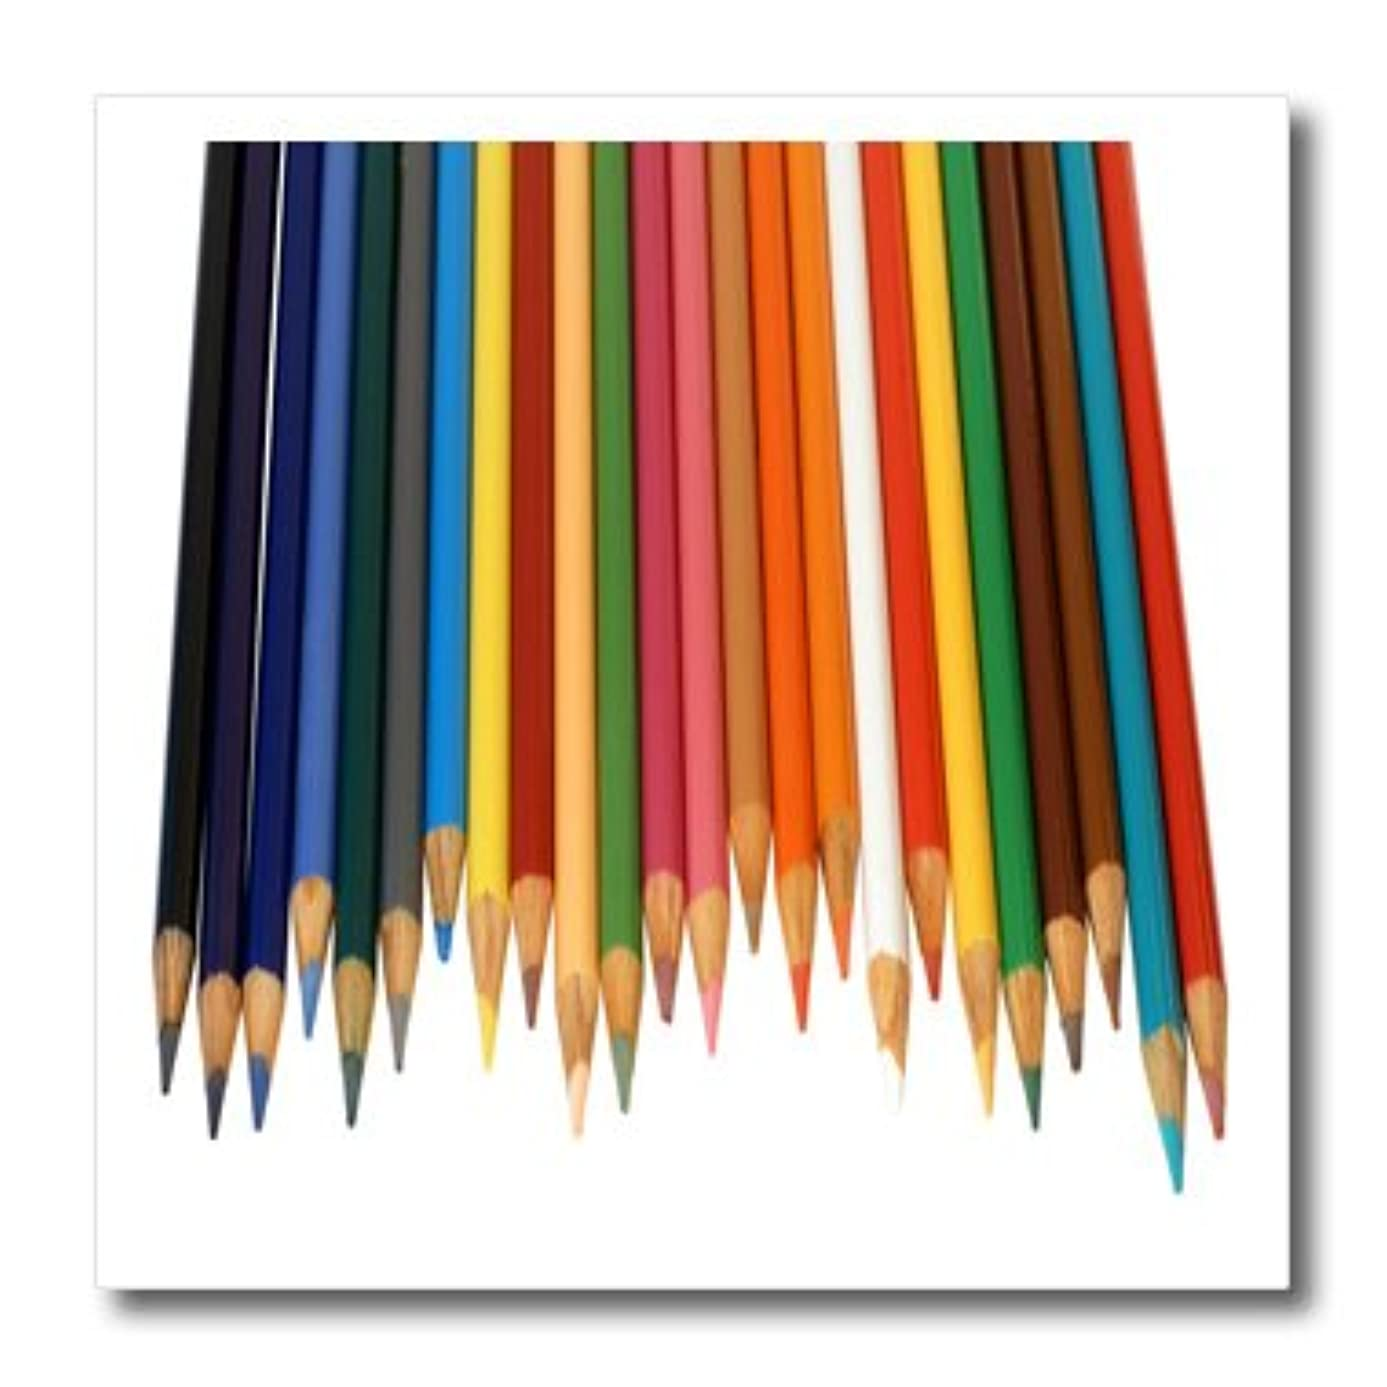 3dRose Colored Pencils-Iron on Heat Transfer, 8 by 8